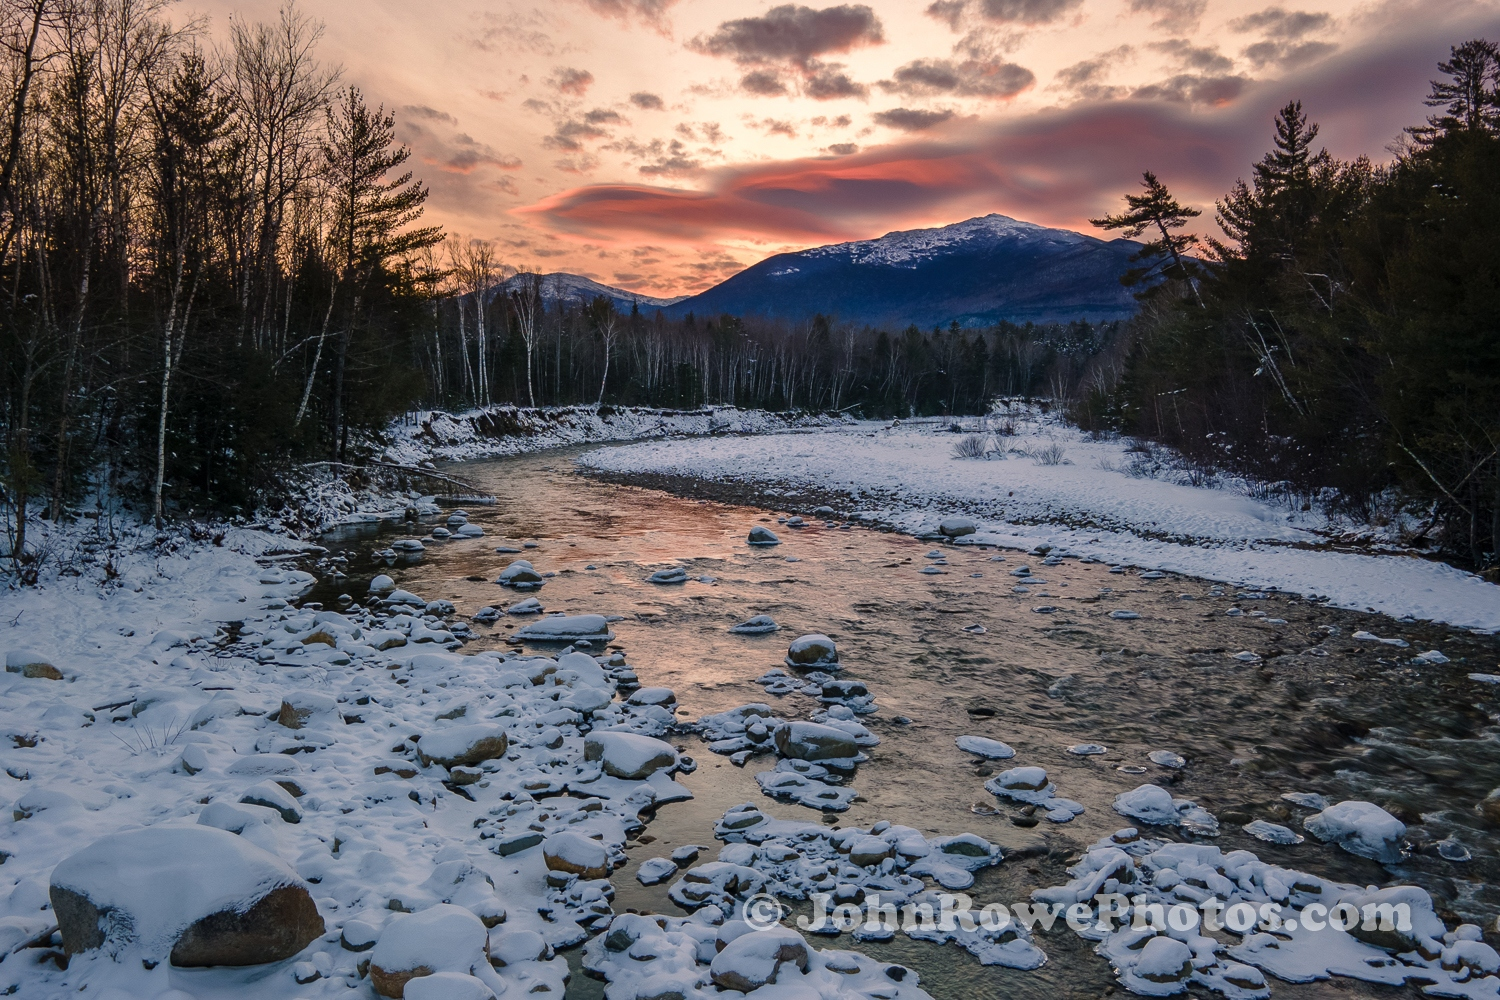 Mt Madison Rises Above The Peabody River in Gorham, NH